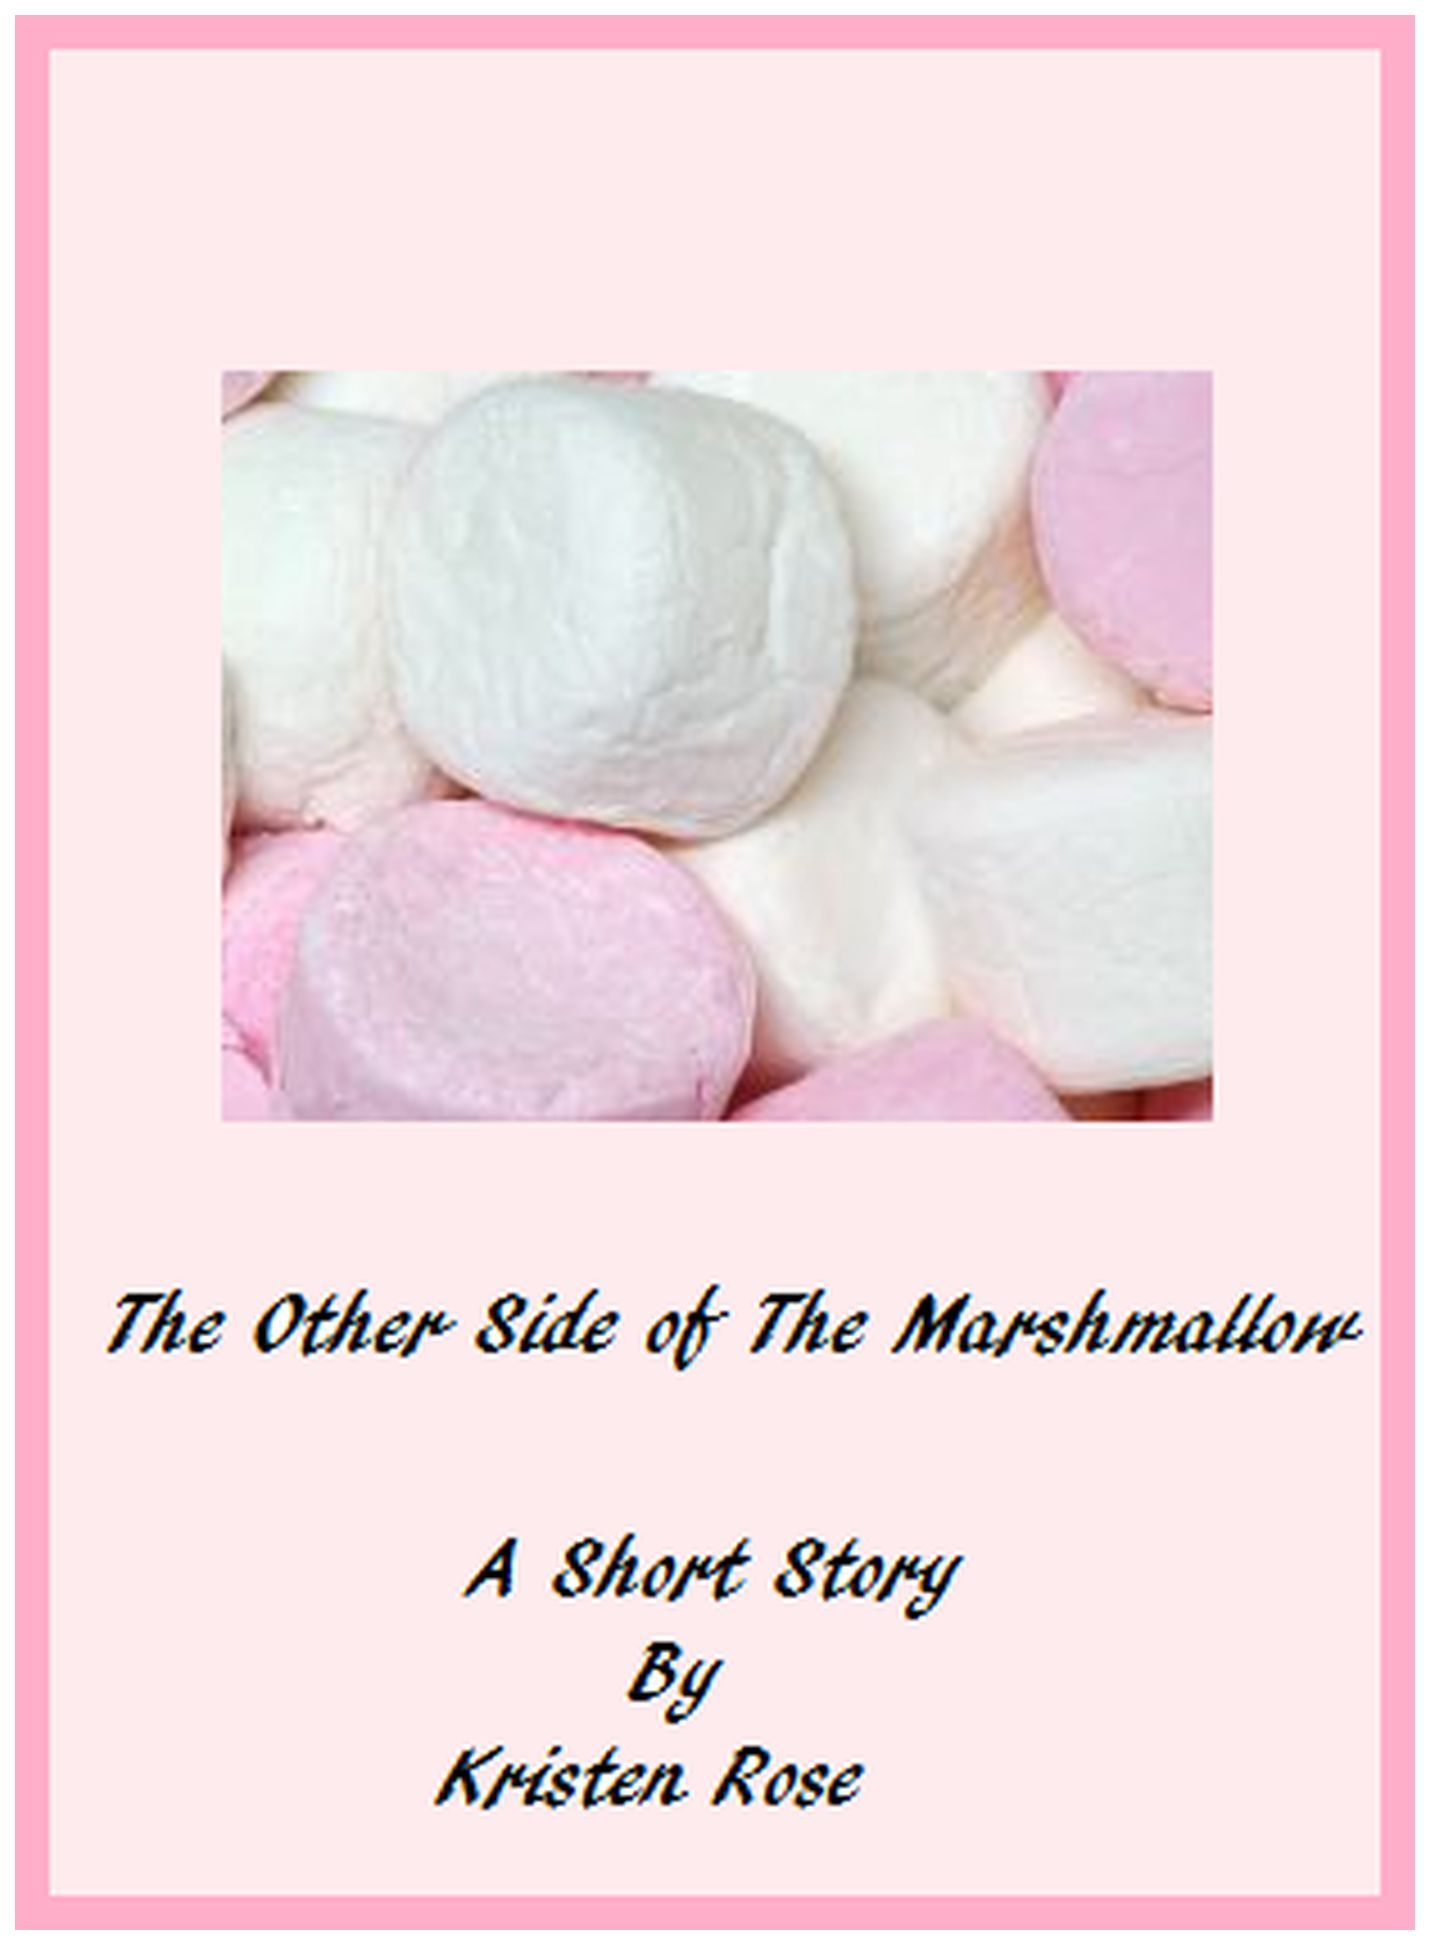 The Other Side of the Marshmallow